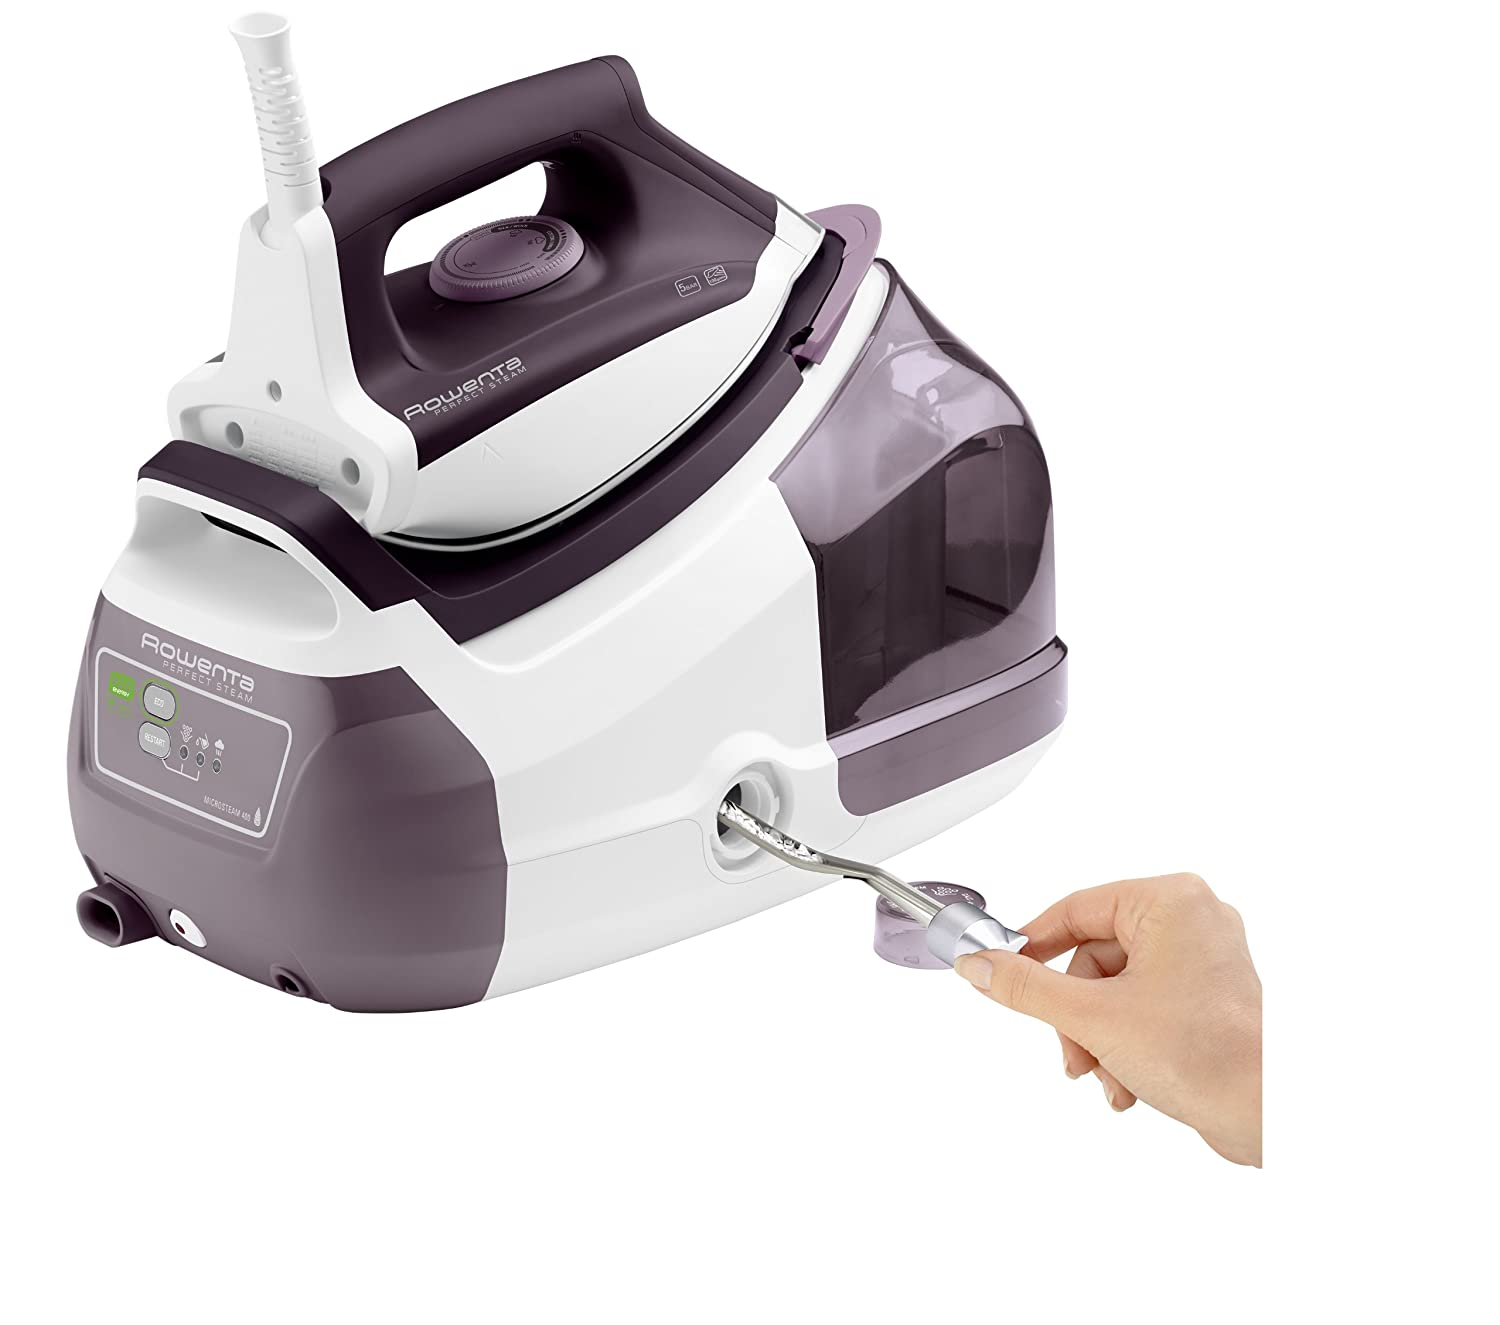 Cleaning rowenta pressure iron and steamer - Cleaning Rowenta Pressure Iron And Steamer 12